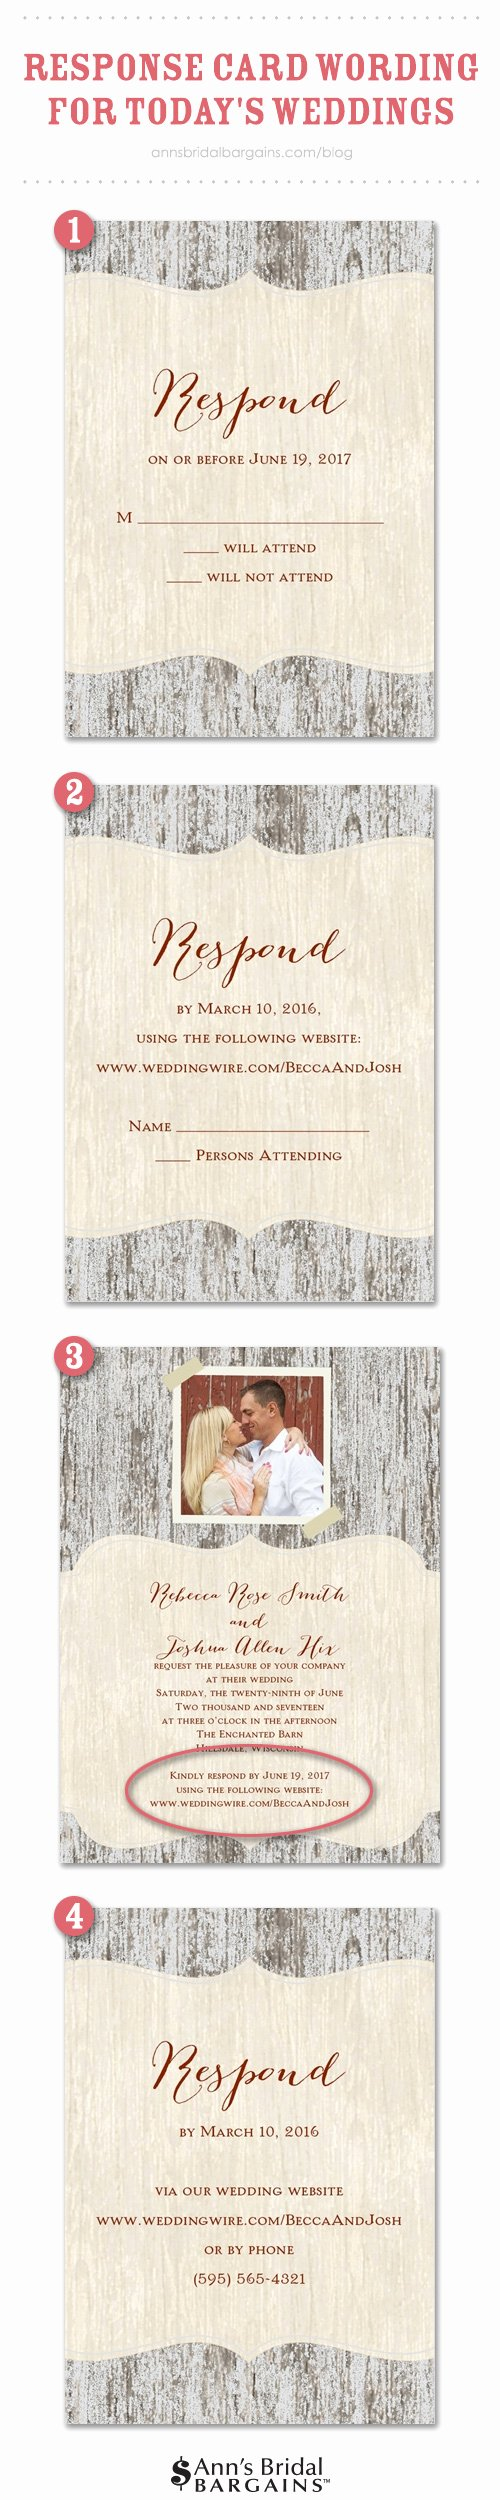 Rsvp Online Wording Fresh Response Card Wording Examples for Line Rsvps